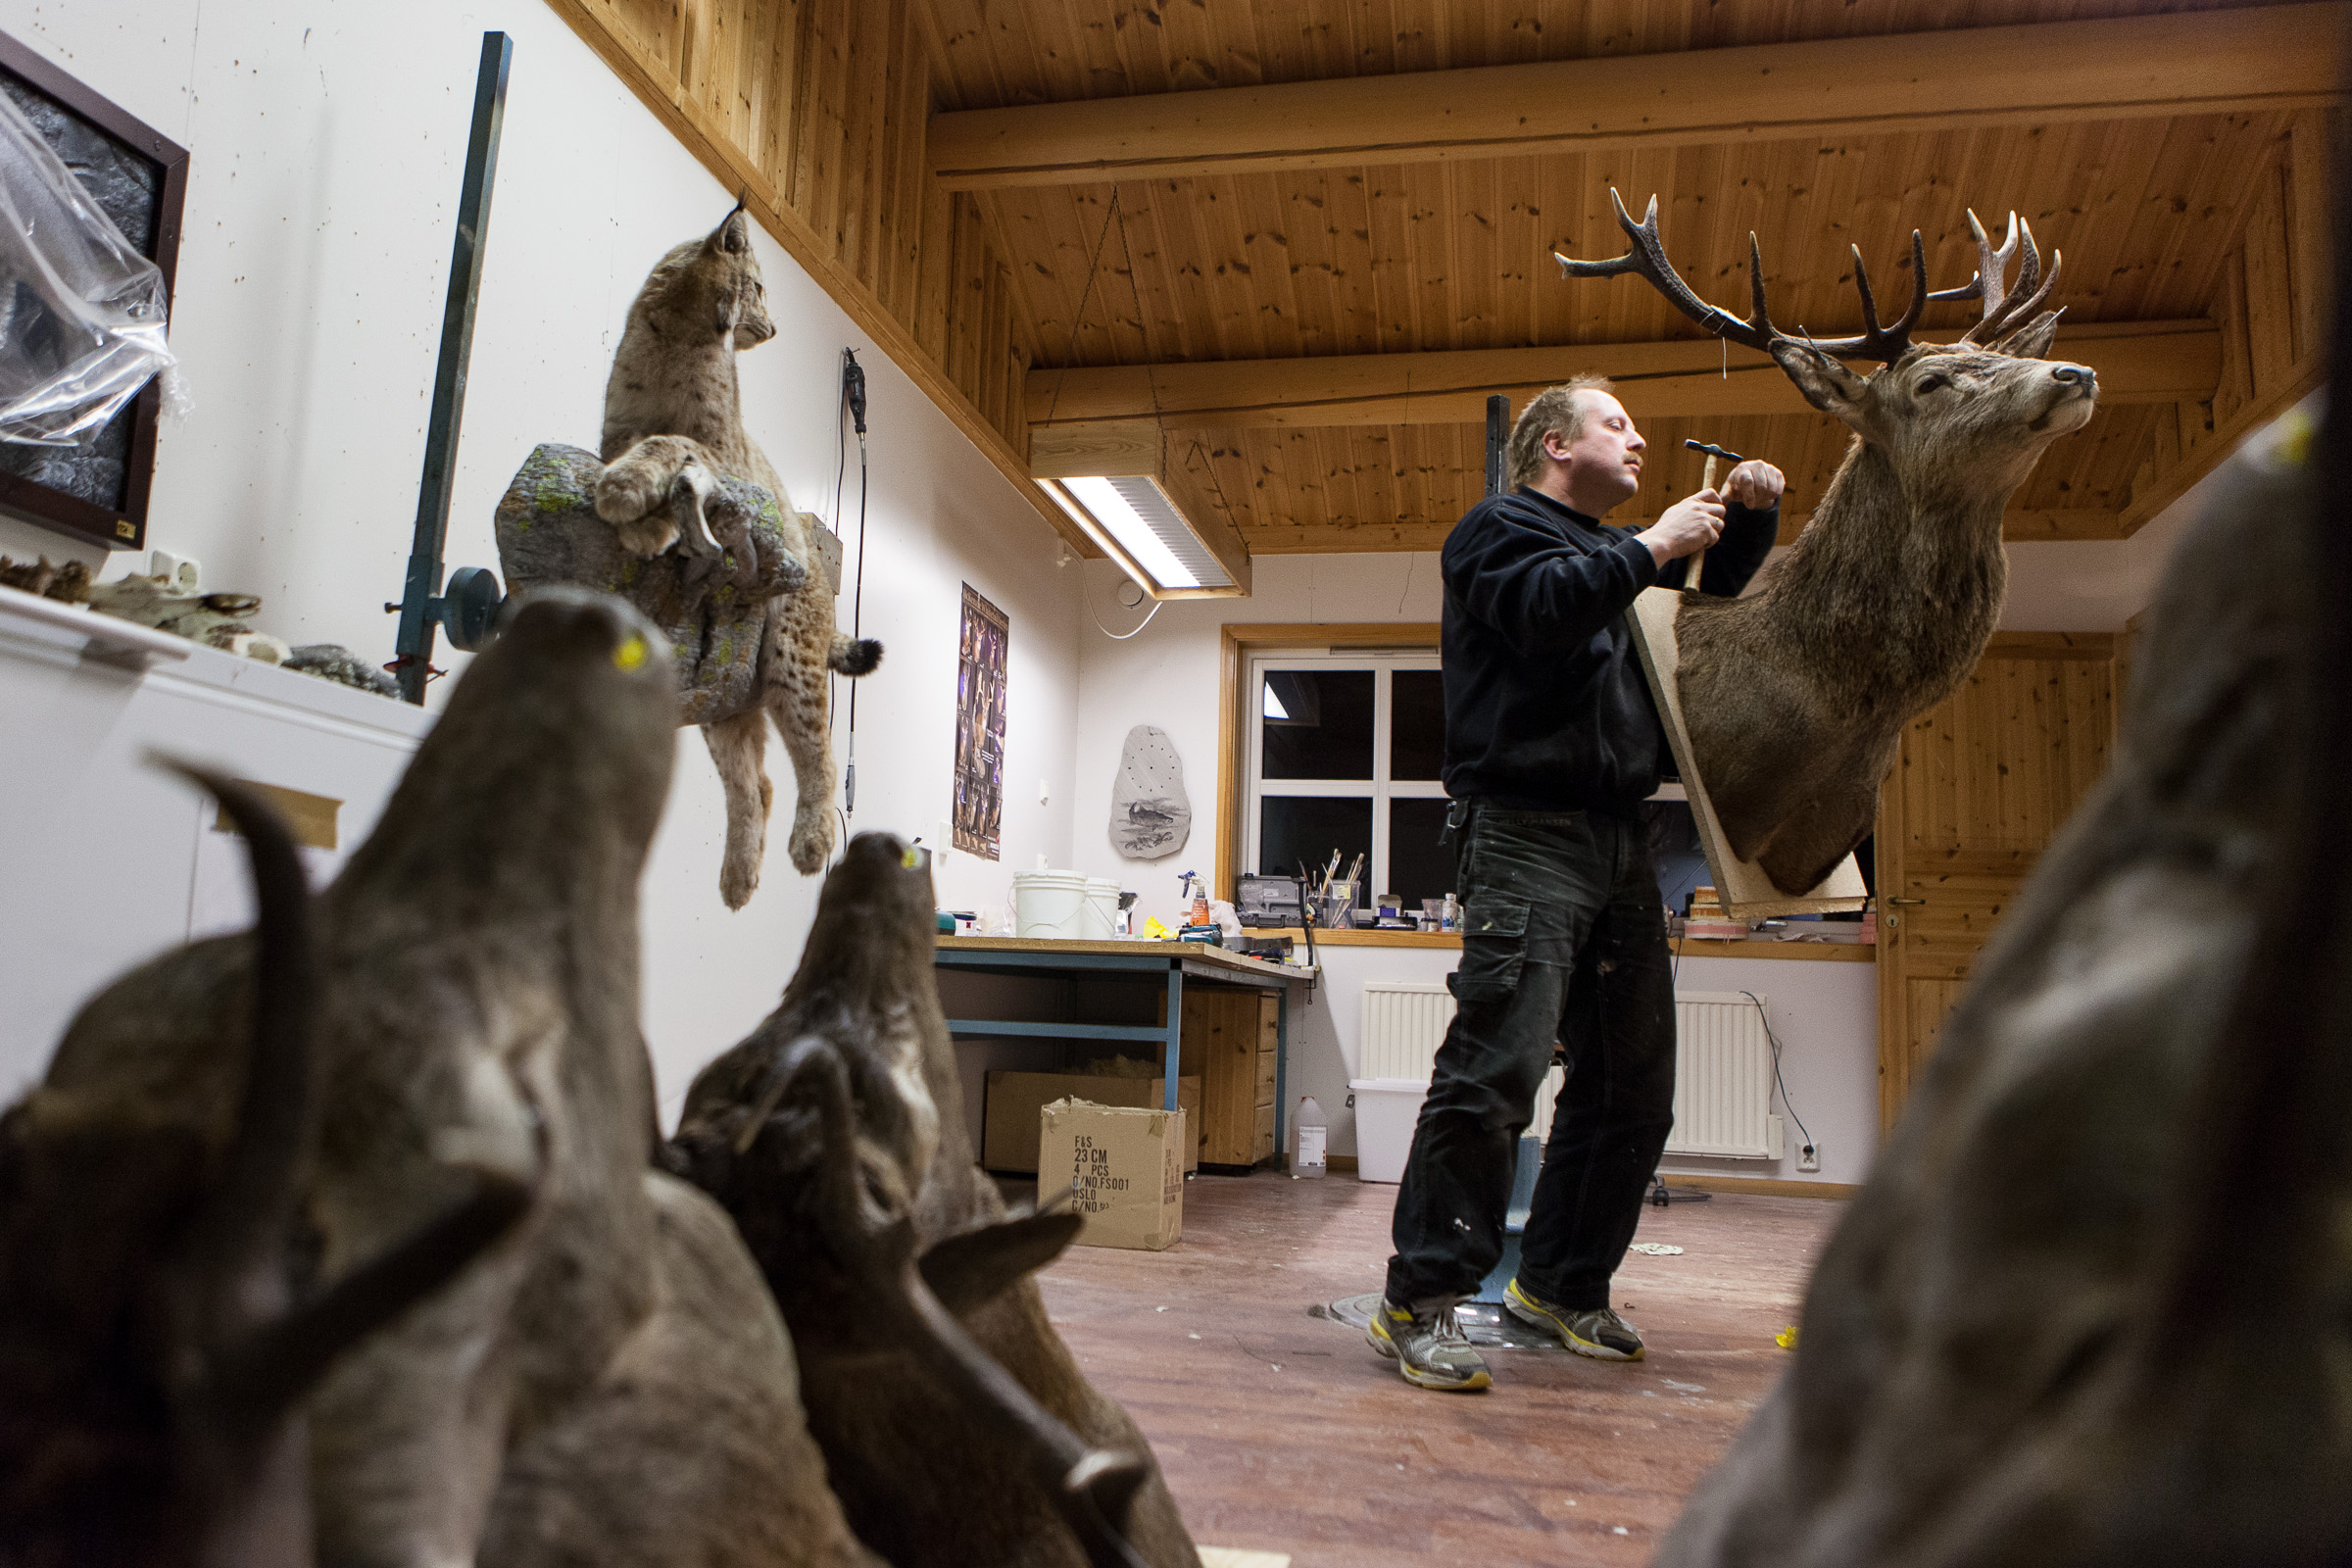 Taxidermist Ole Geir Schanke in Rindal, Norway.